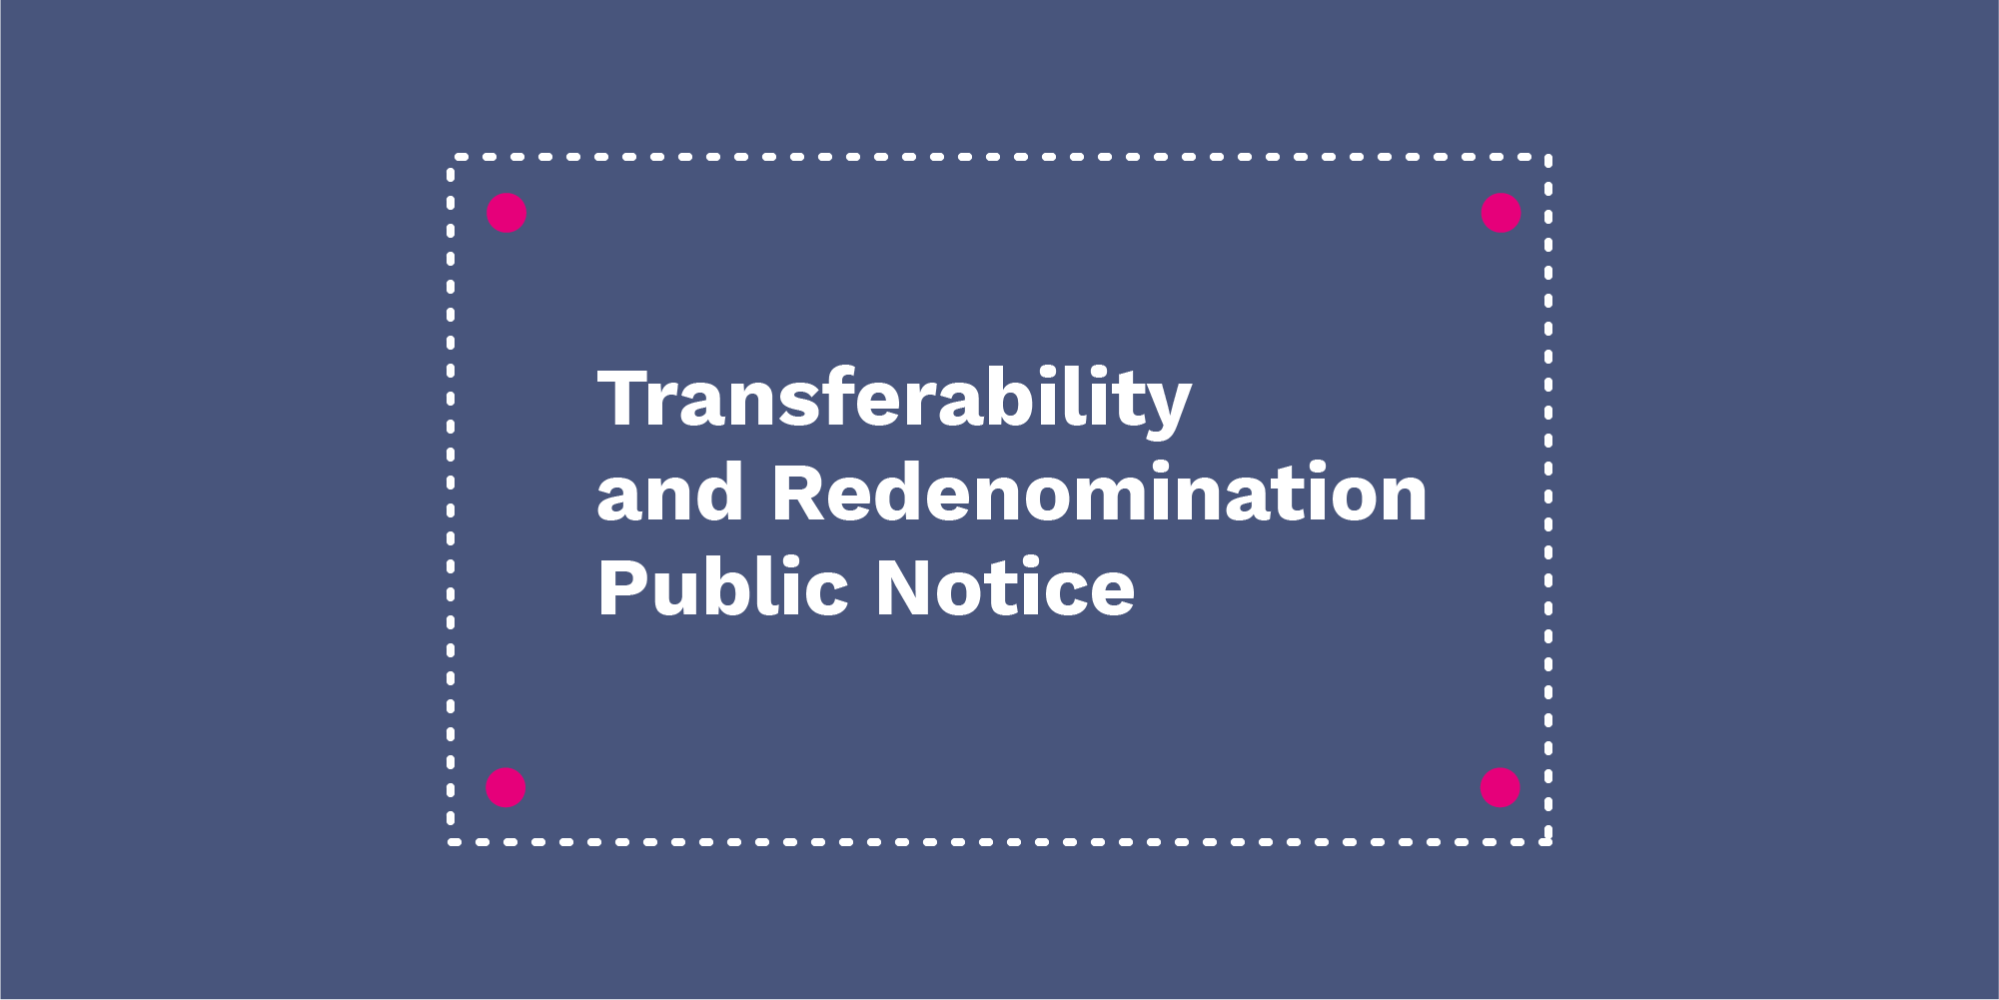 Transferability and Redenomination Public Notice